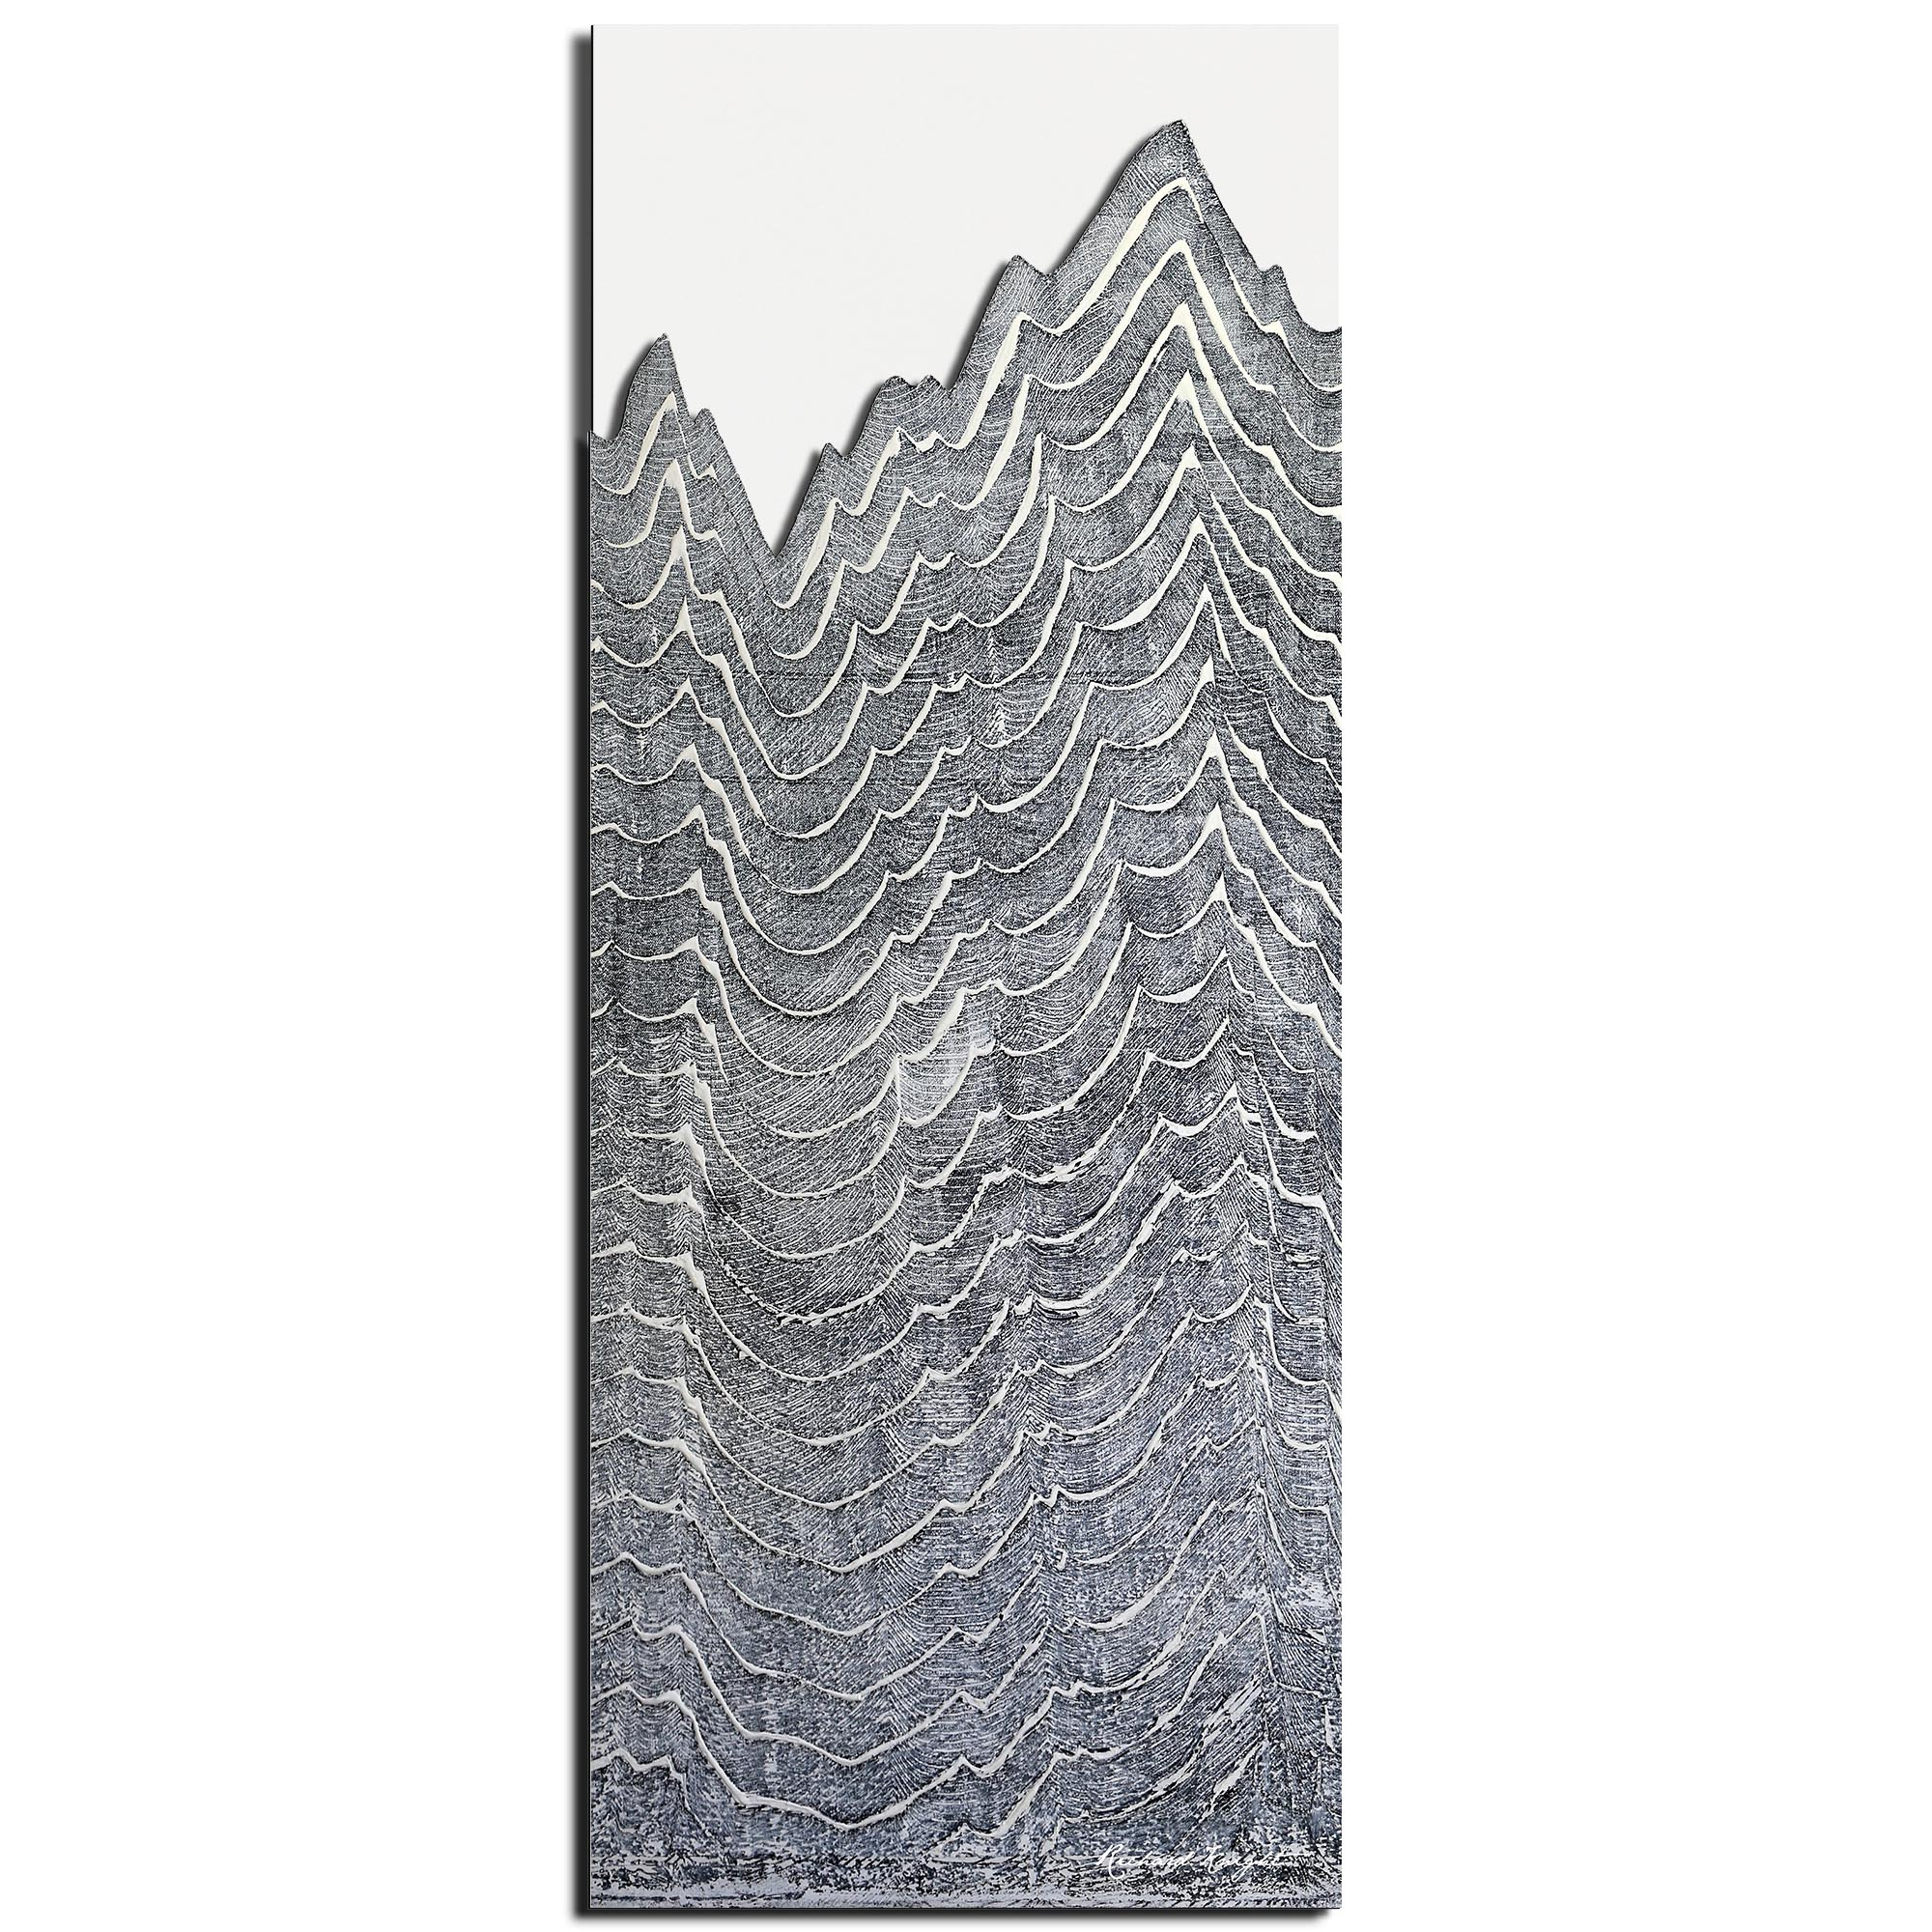 Richard Knight 'Aging Peaks' 19in x 48in Abstract Landscape Art on Polymetal